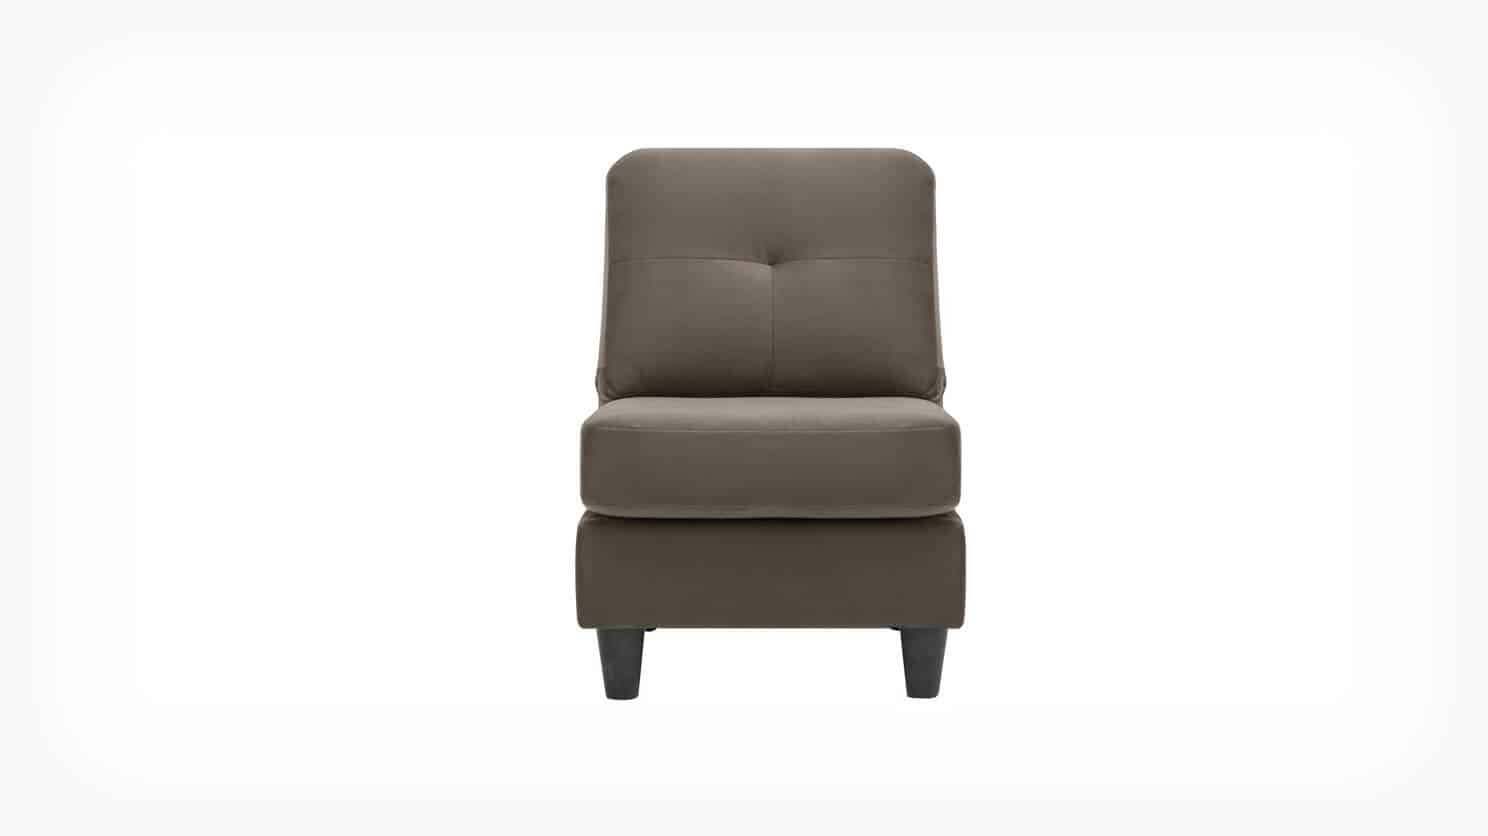 30129 10 1 chairs solo armless chair disco fabric front